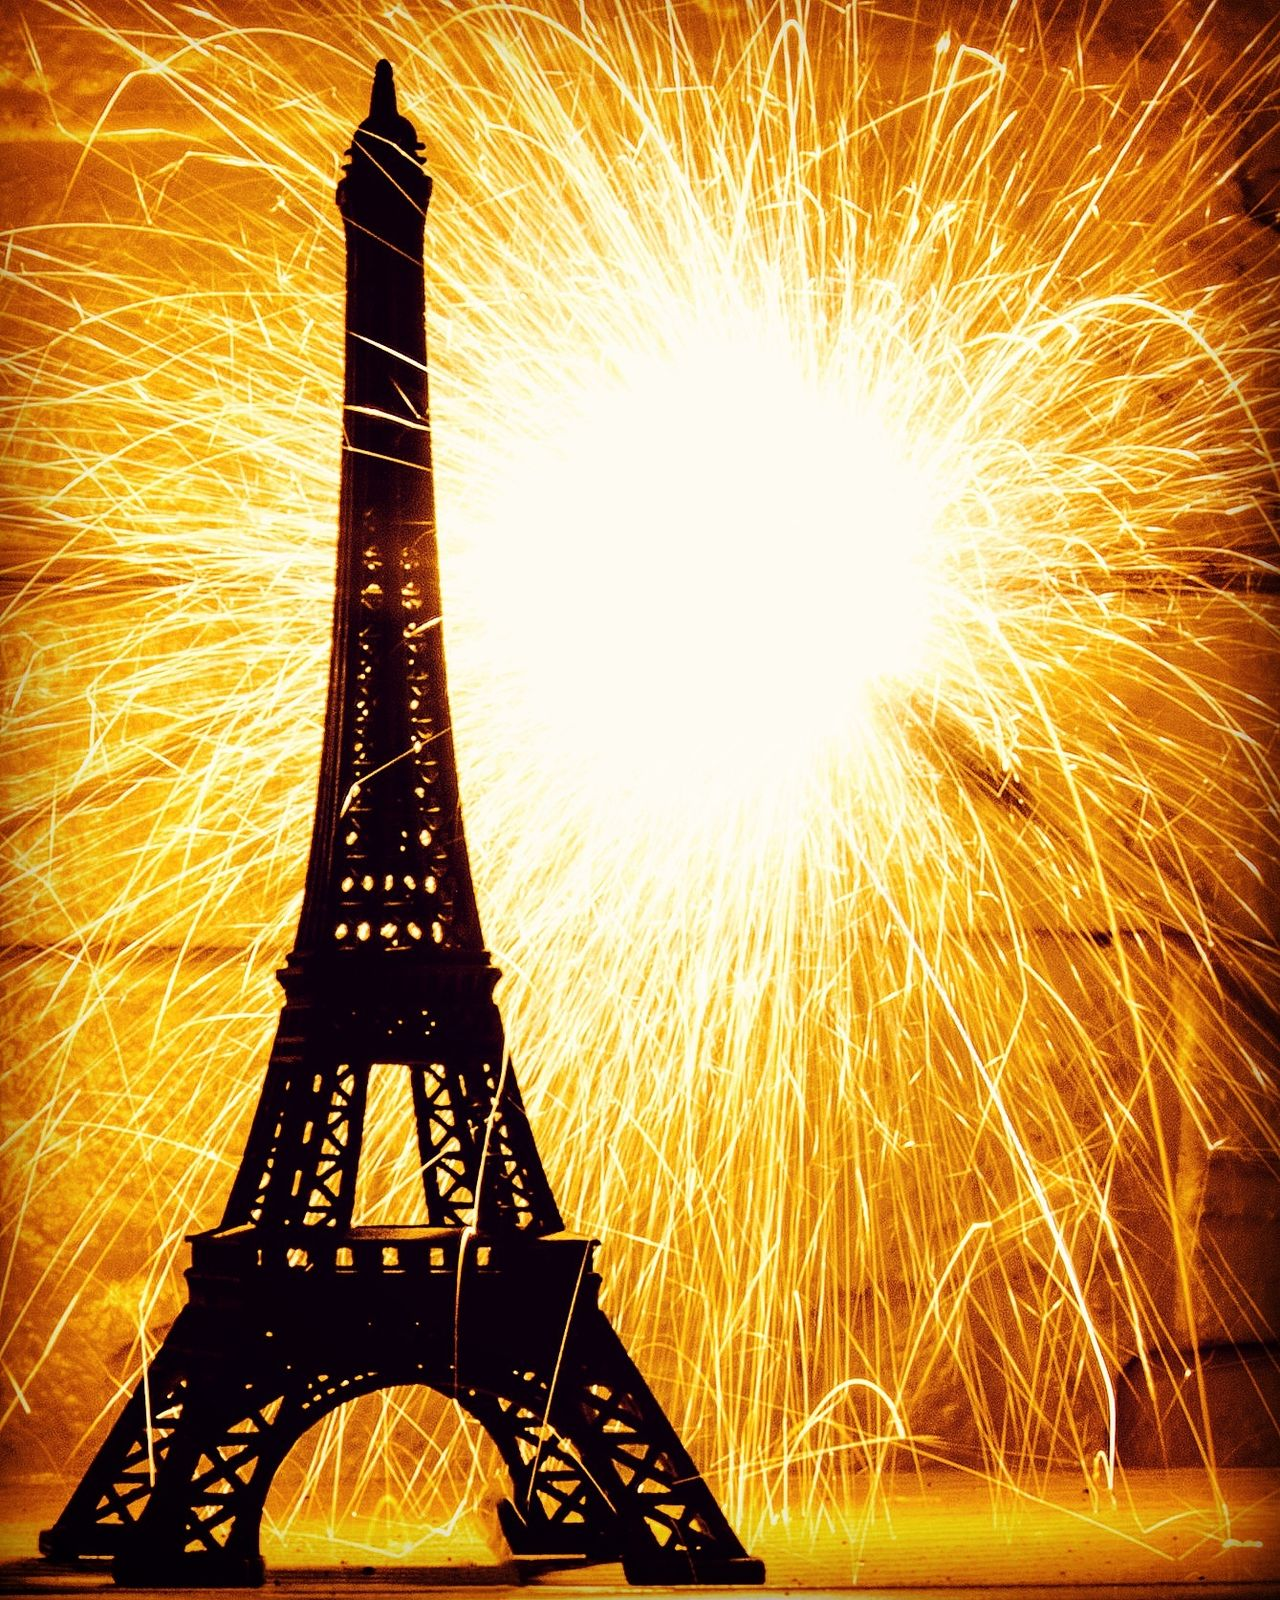 Imagine Your Dream | Create Your Happiness | Live Your Life.. Belated Diwali Post.. . Firework Display Night Crackers Diwalicelebrations Diwali Diwalitime Diwali 2016 Diwali Festival In India Craker Creative Light And Shadow Creative Photography Yellow Hues Effiel Tower Firework - Man Made Object Lovephotography  Long Exposure Longexposure Longexposure Shot Longexposure_shots Longexposureoftheday Trial And Error DSLR Photography Party Time! Traditional Dslrphotography